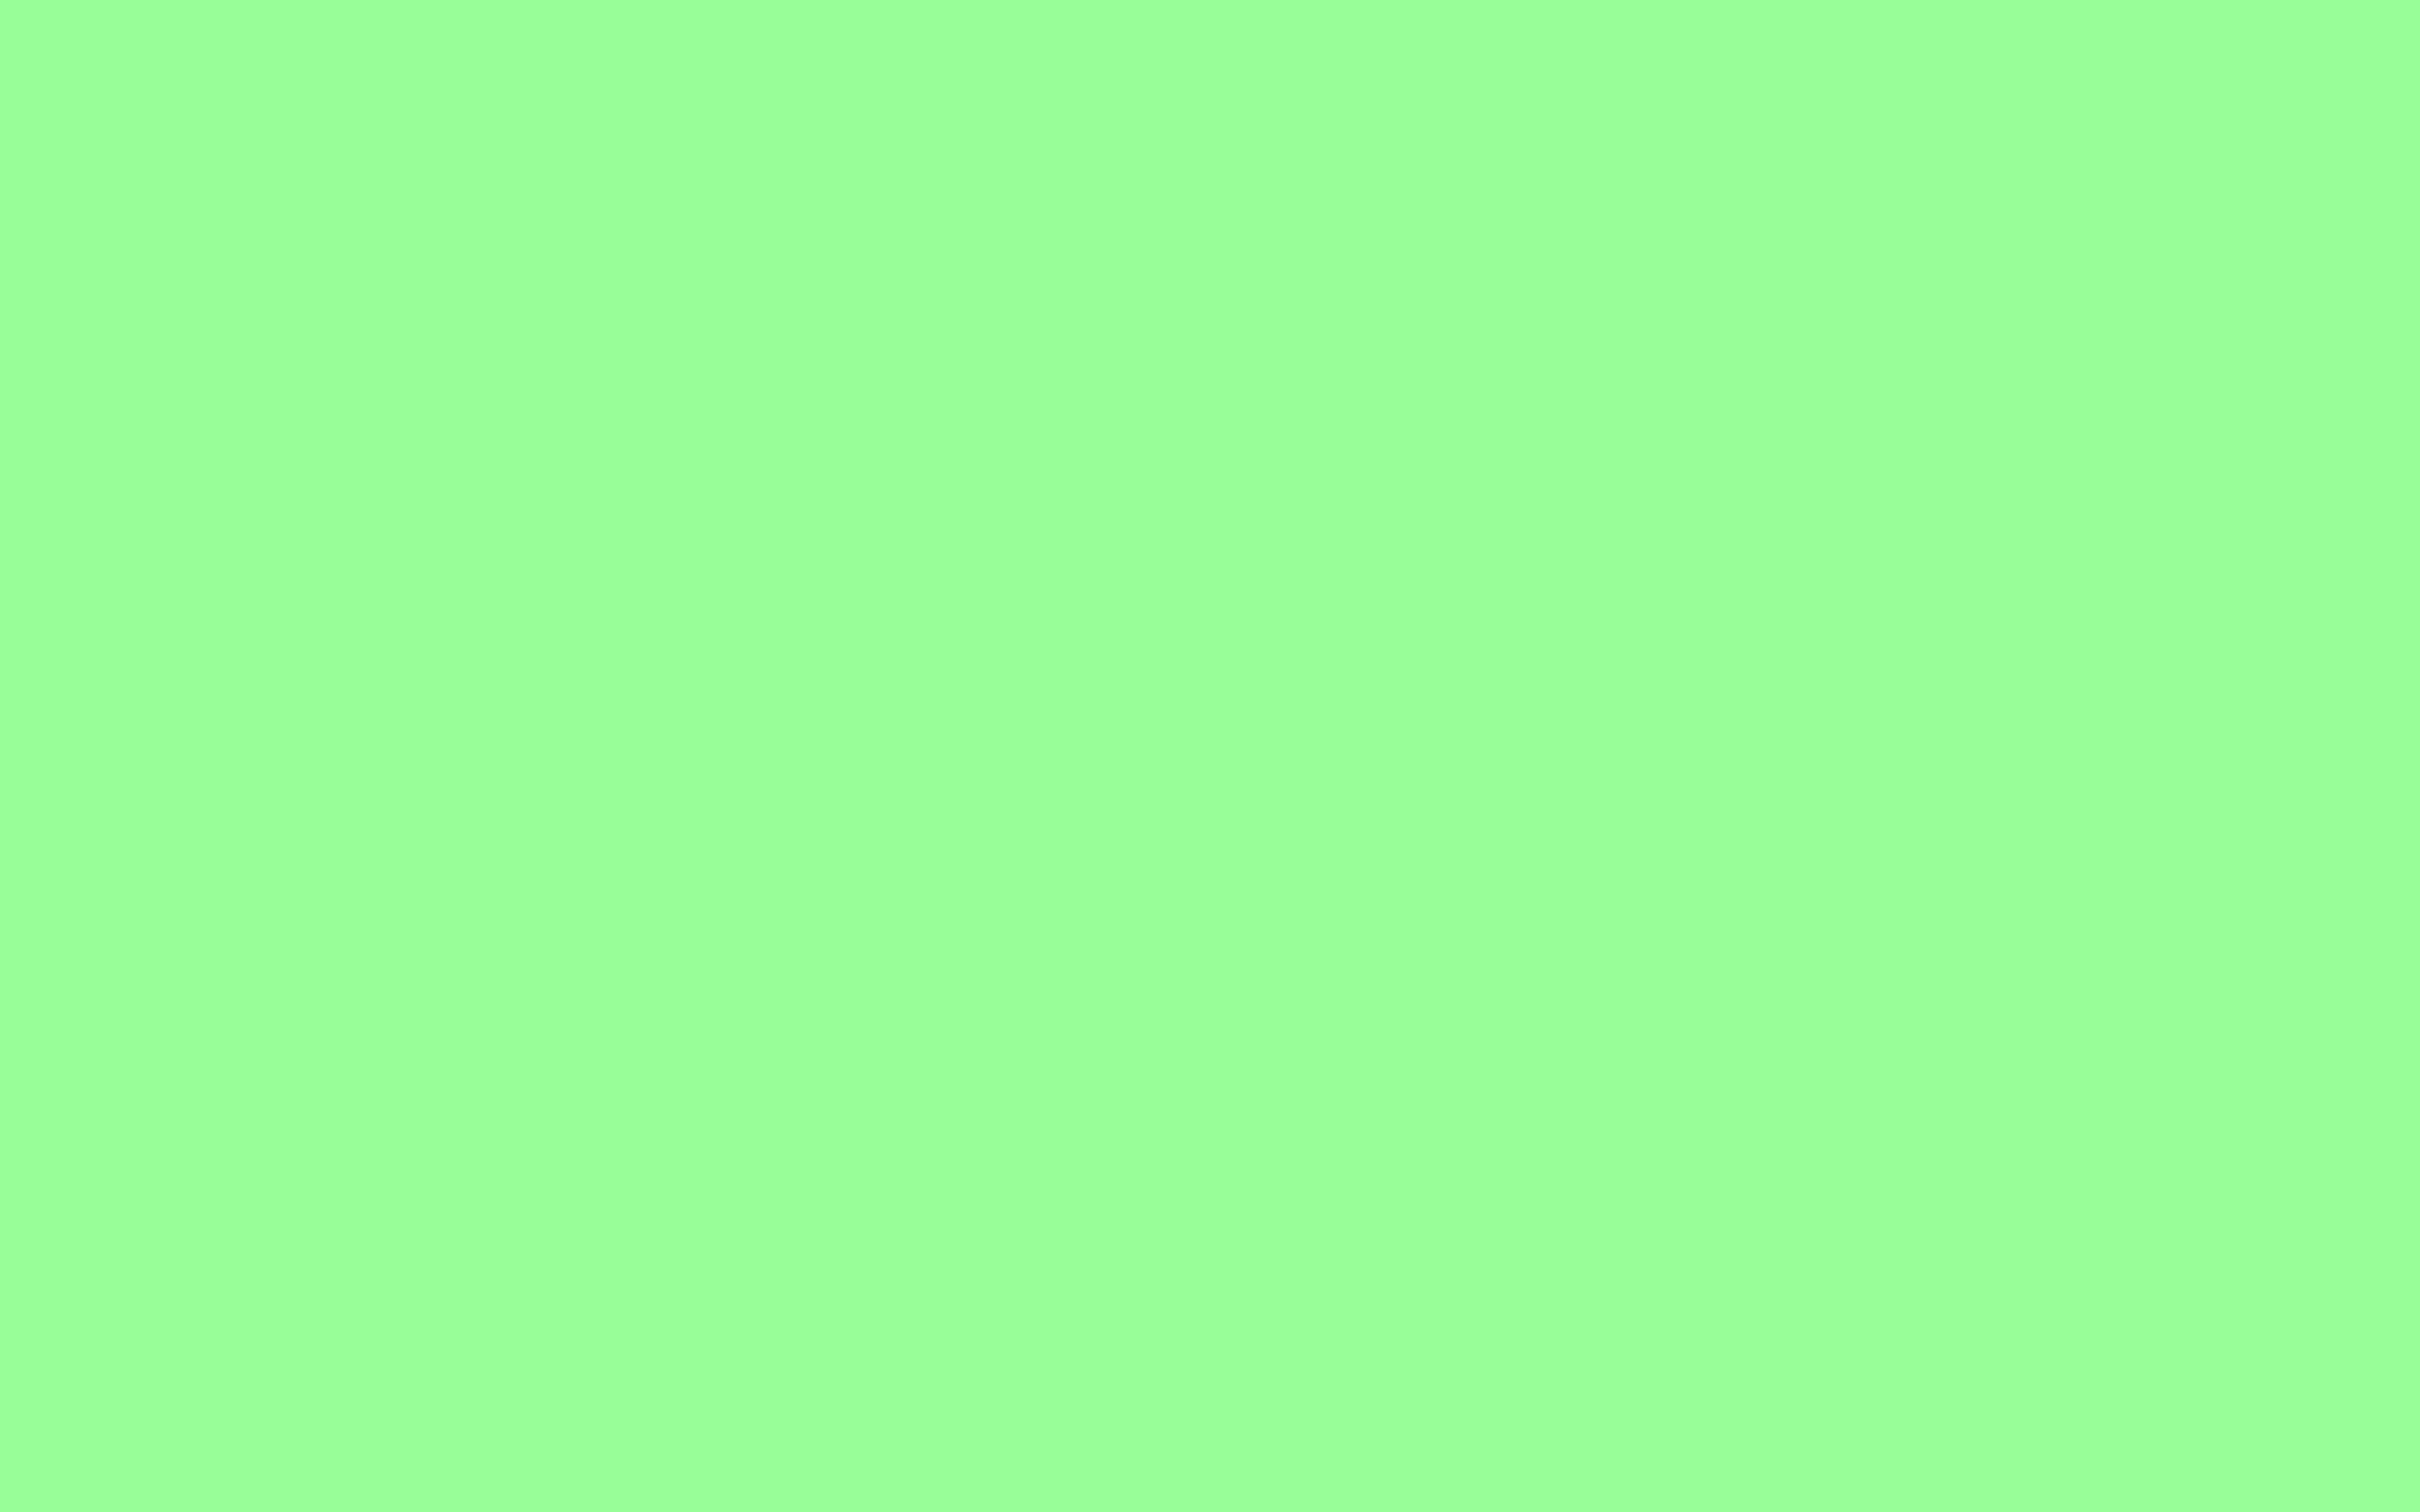 2880x1800 Mint Green Solid Color Background